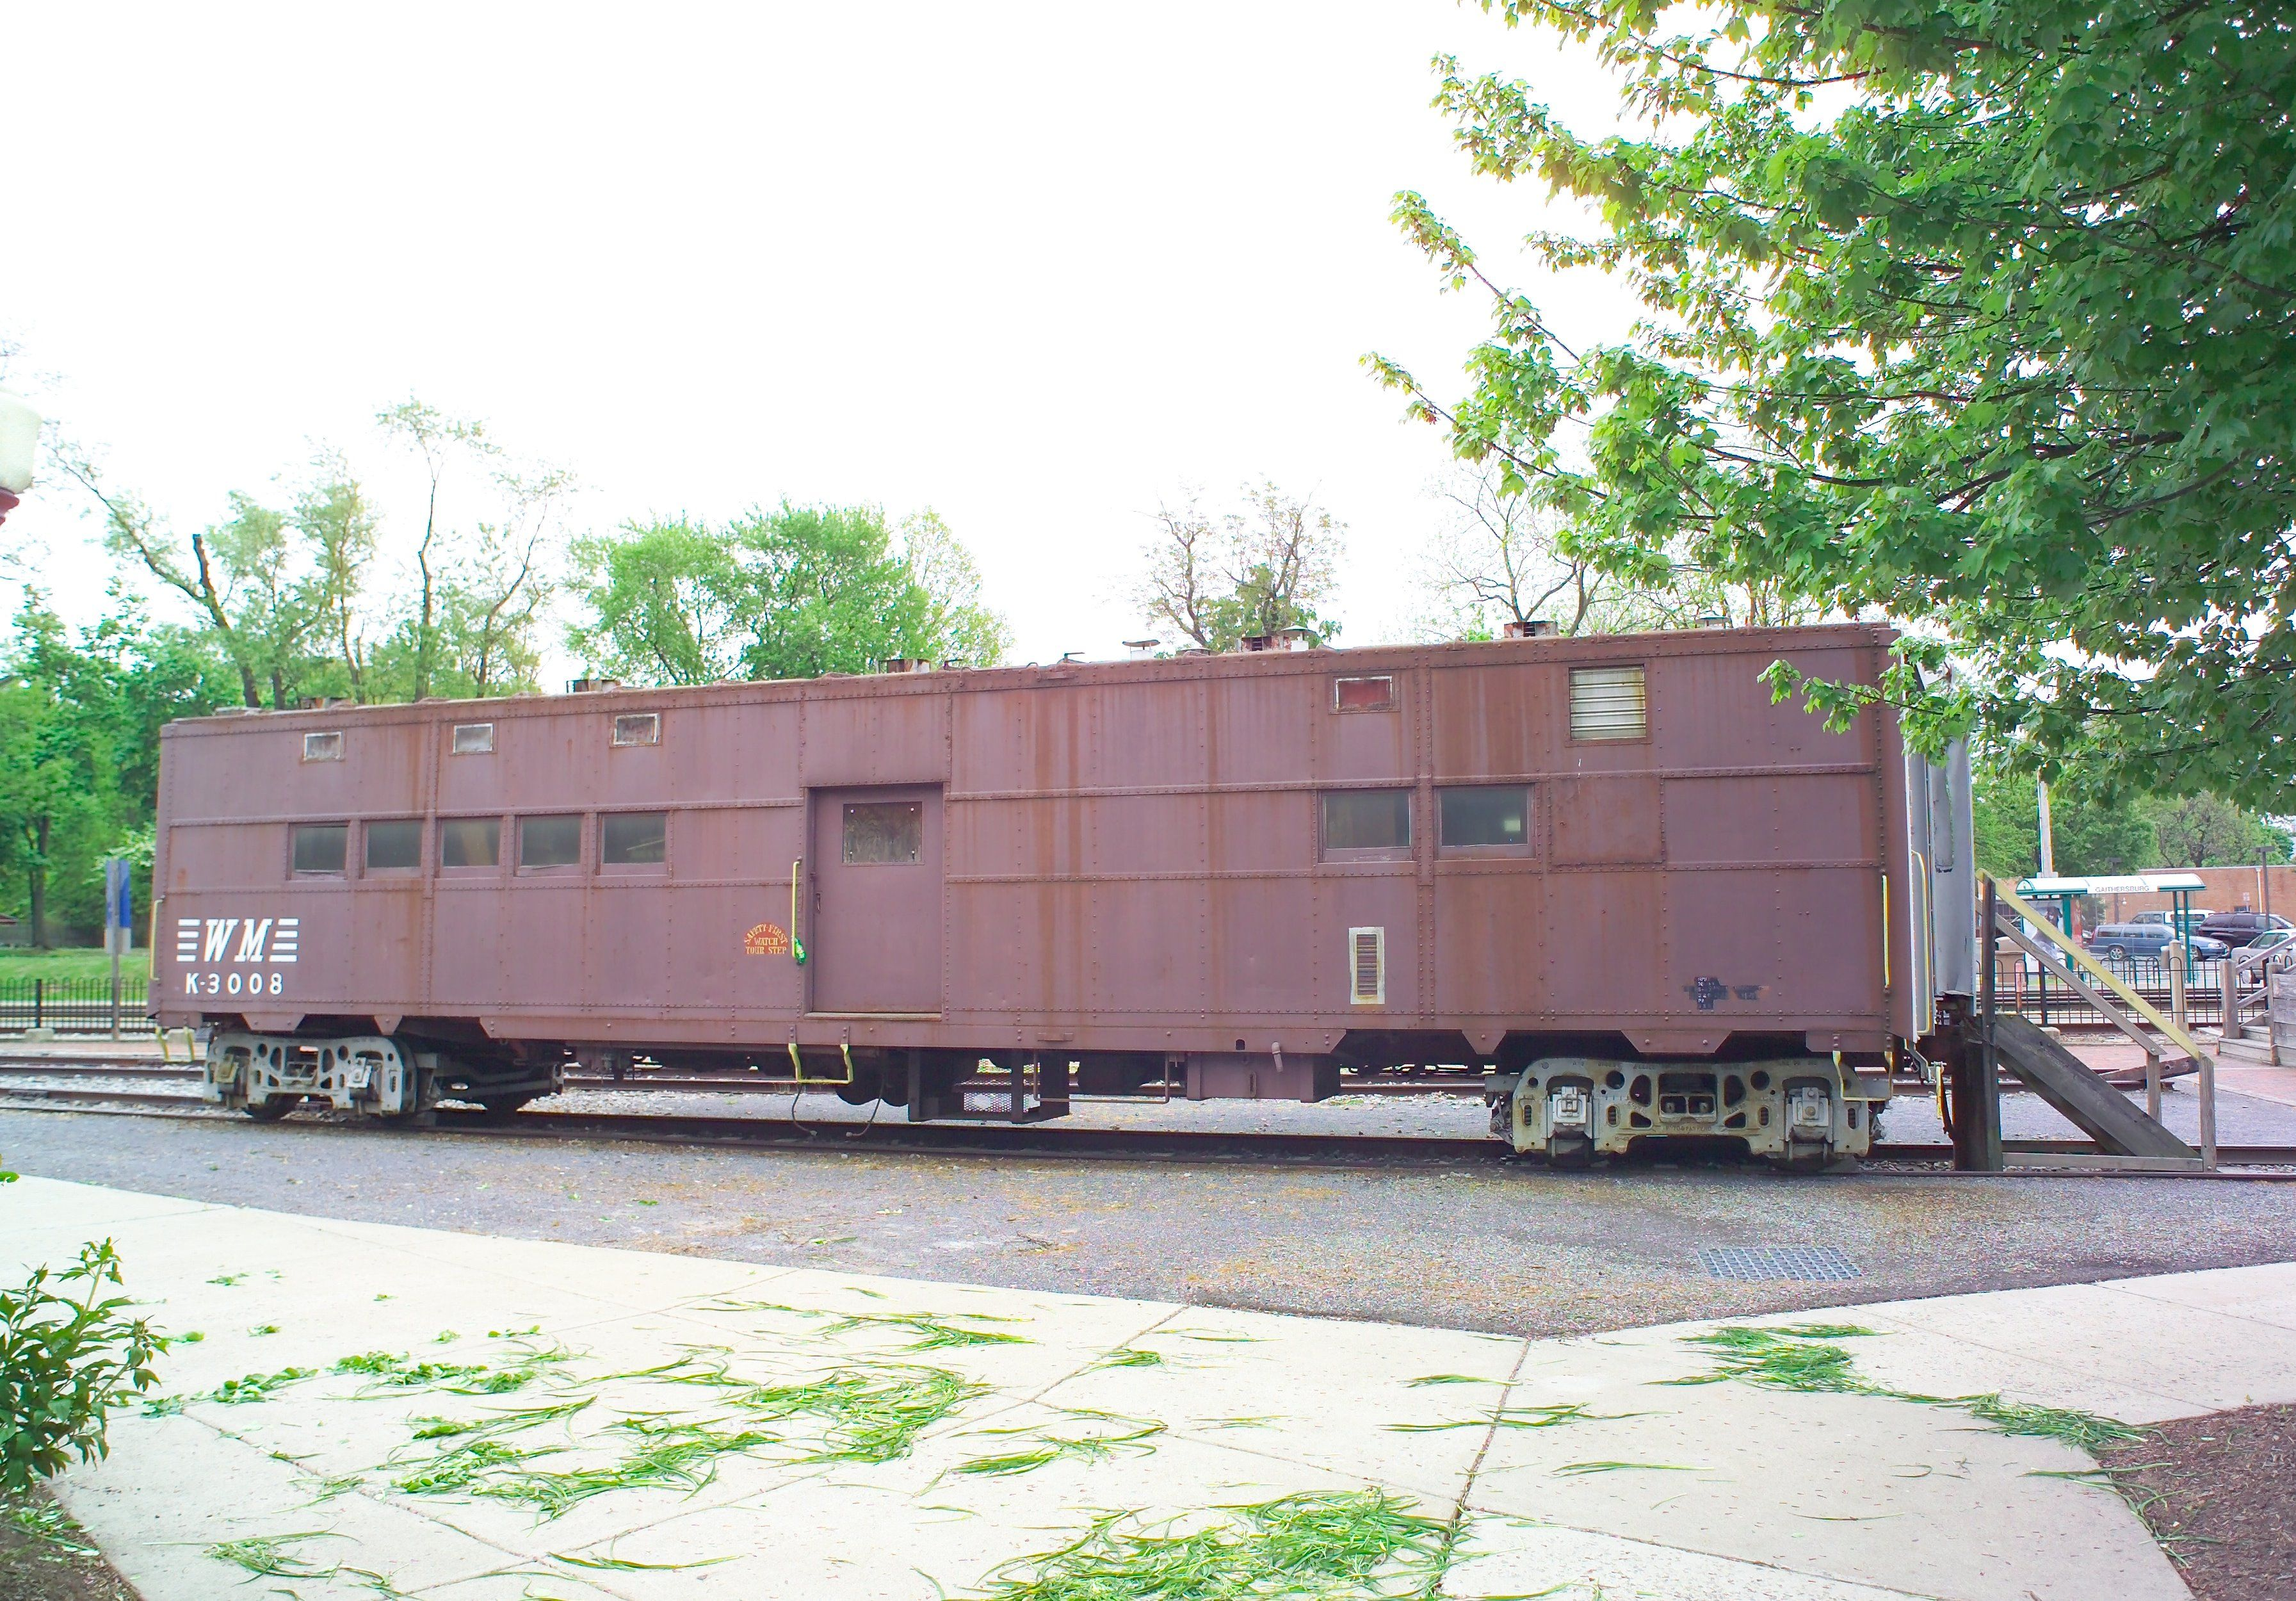 Western Maryland Railway Office Car K-3008